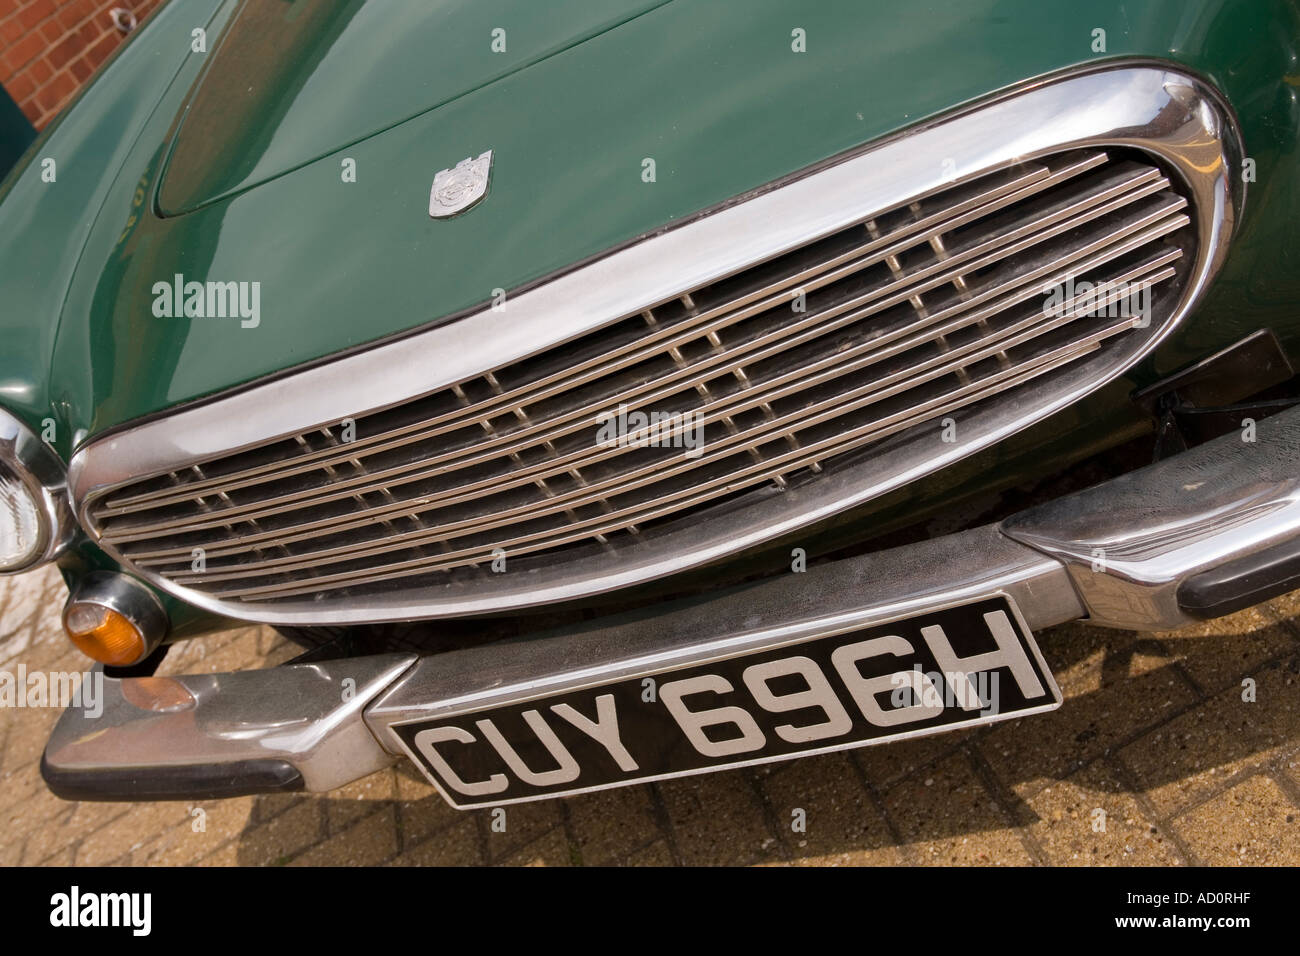 England Bristol Baltic Wharf front of 60s P1800 Volvo The Saint car - Stock Image